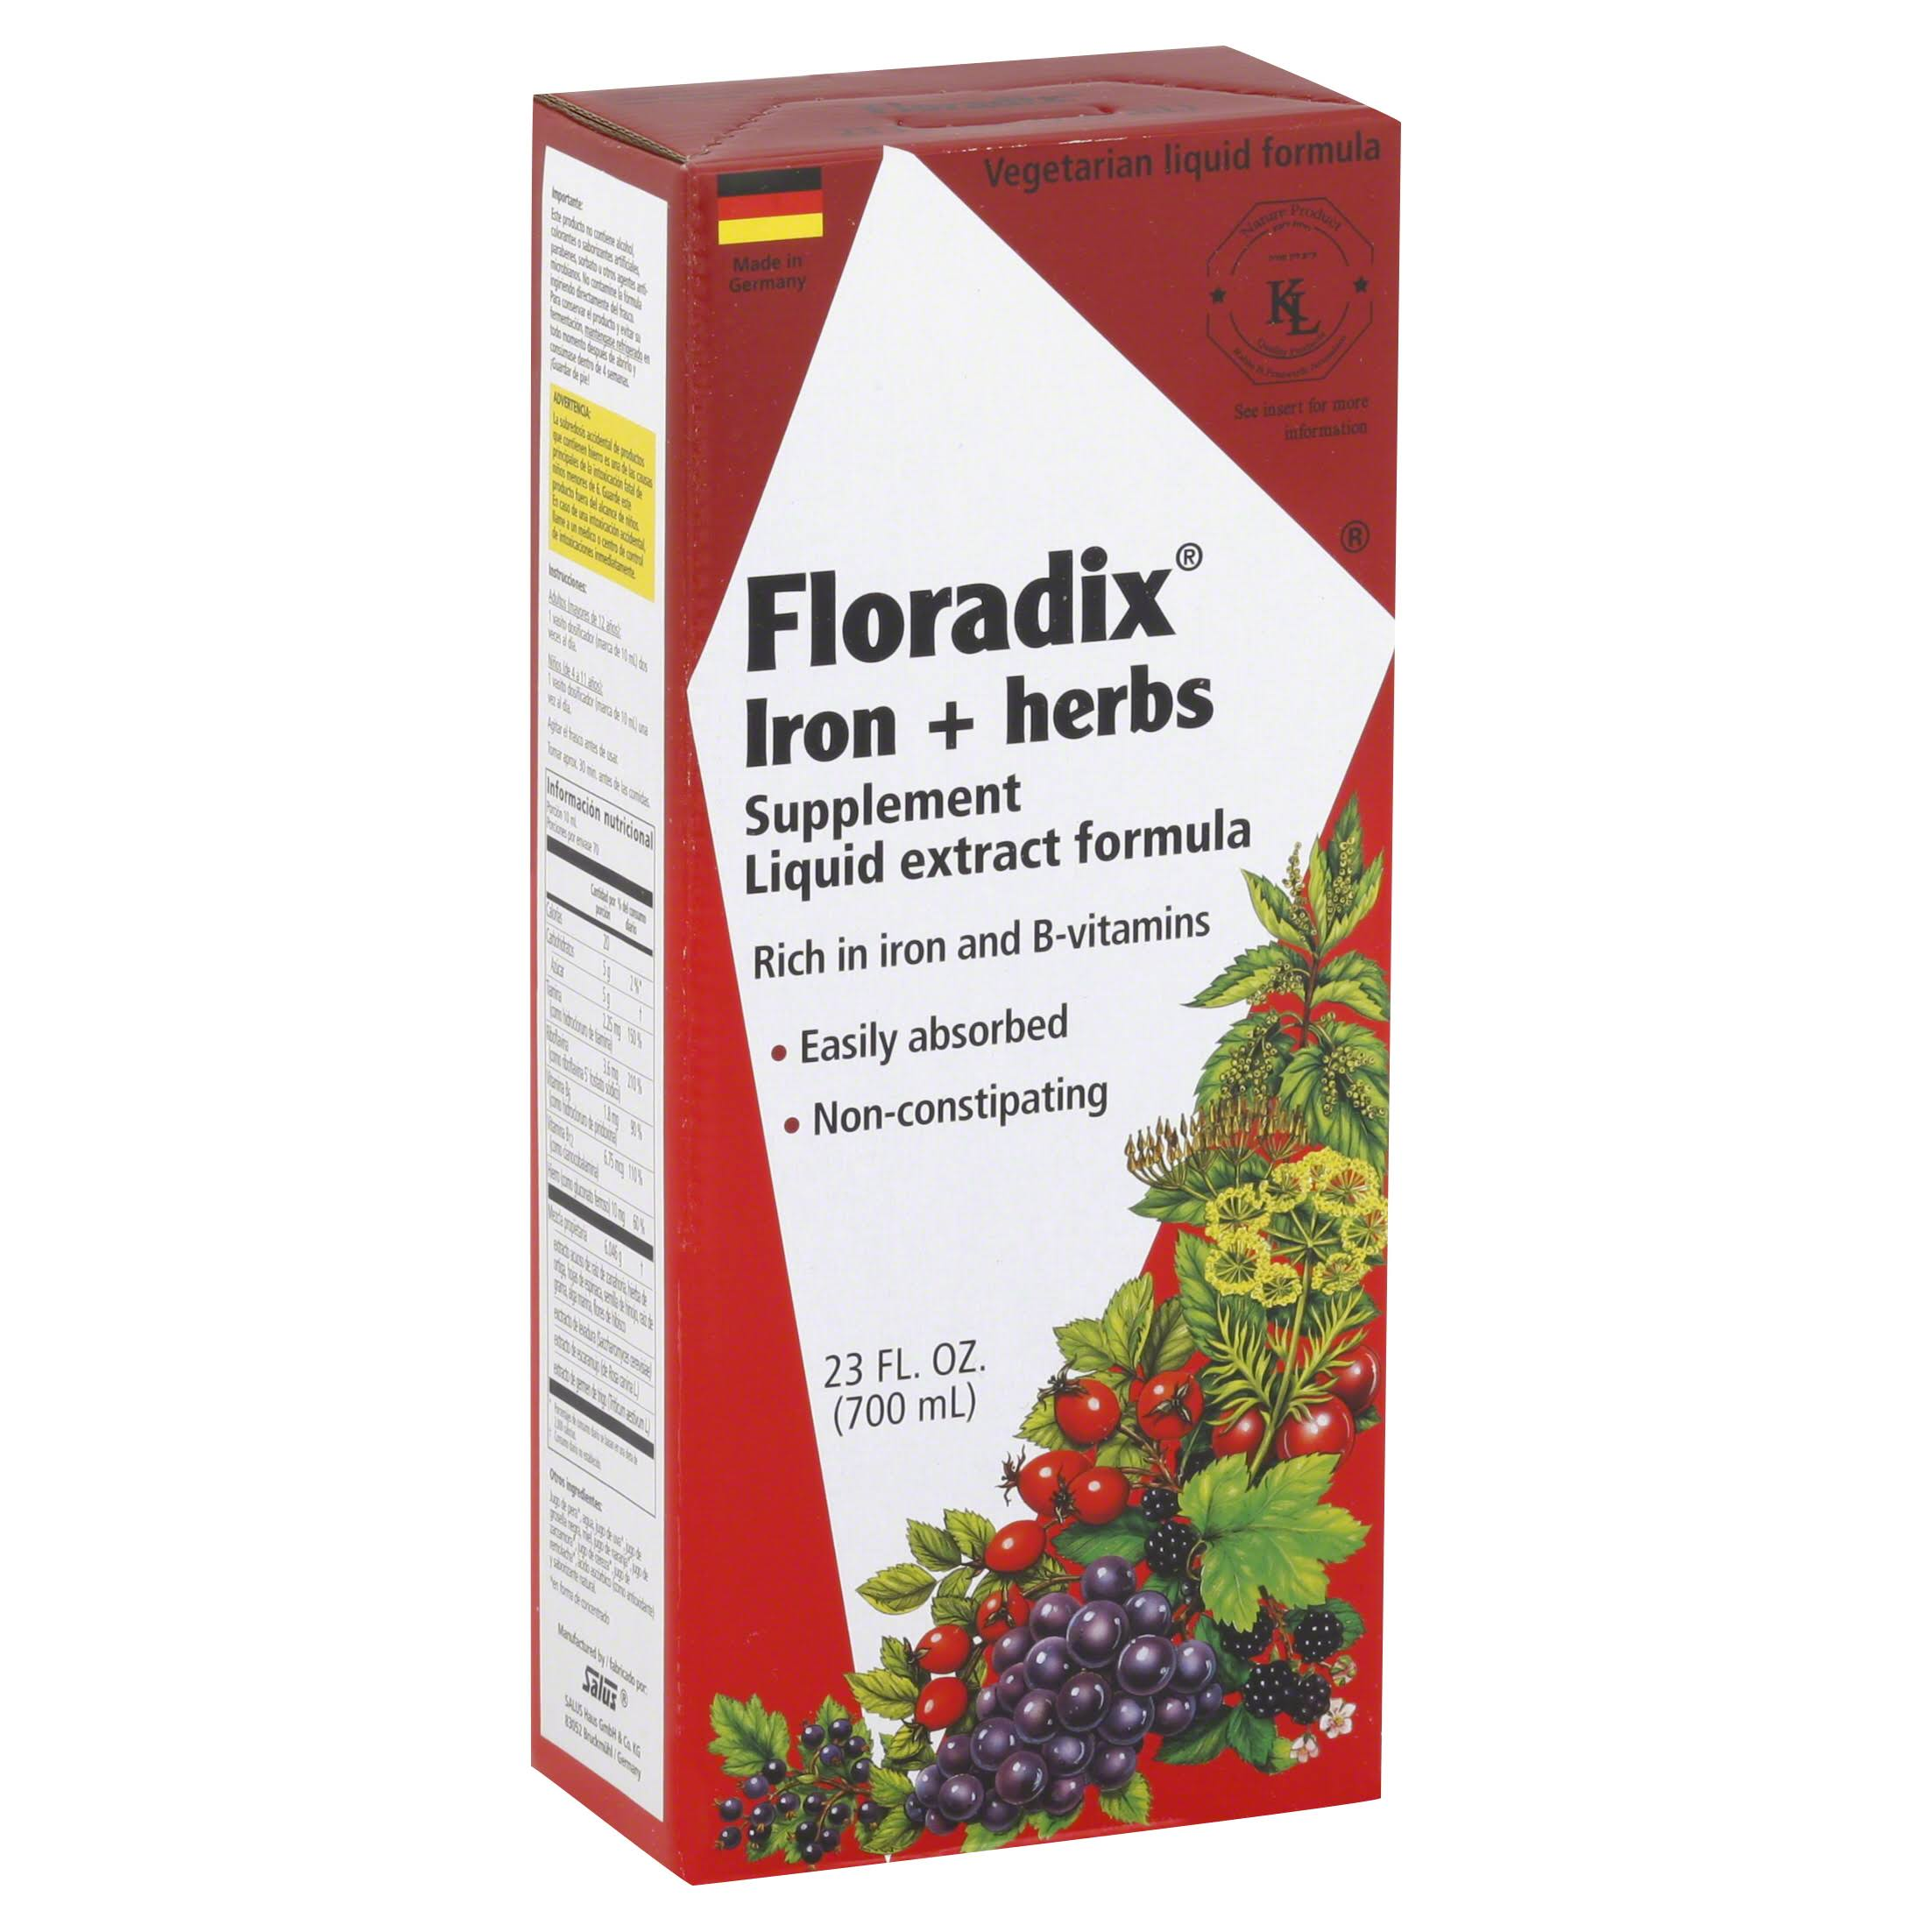 Flora Floradix Iron + Herbs Supplement Liquid Extract Formula - 700ml